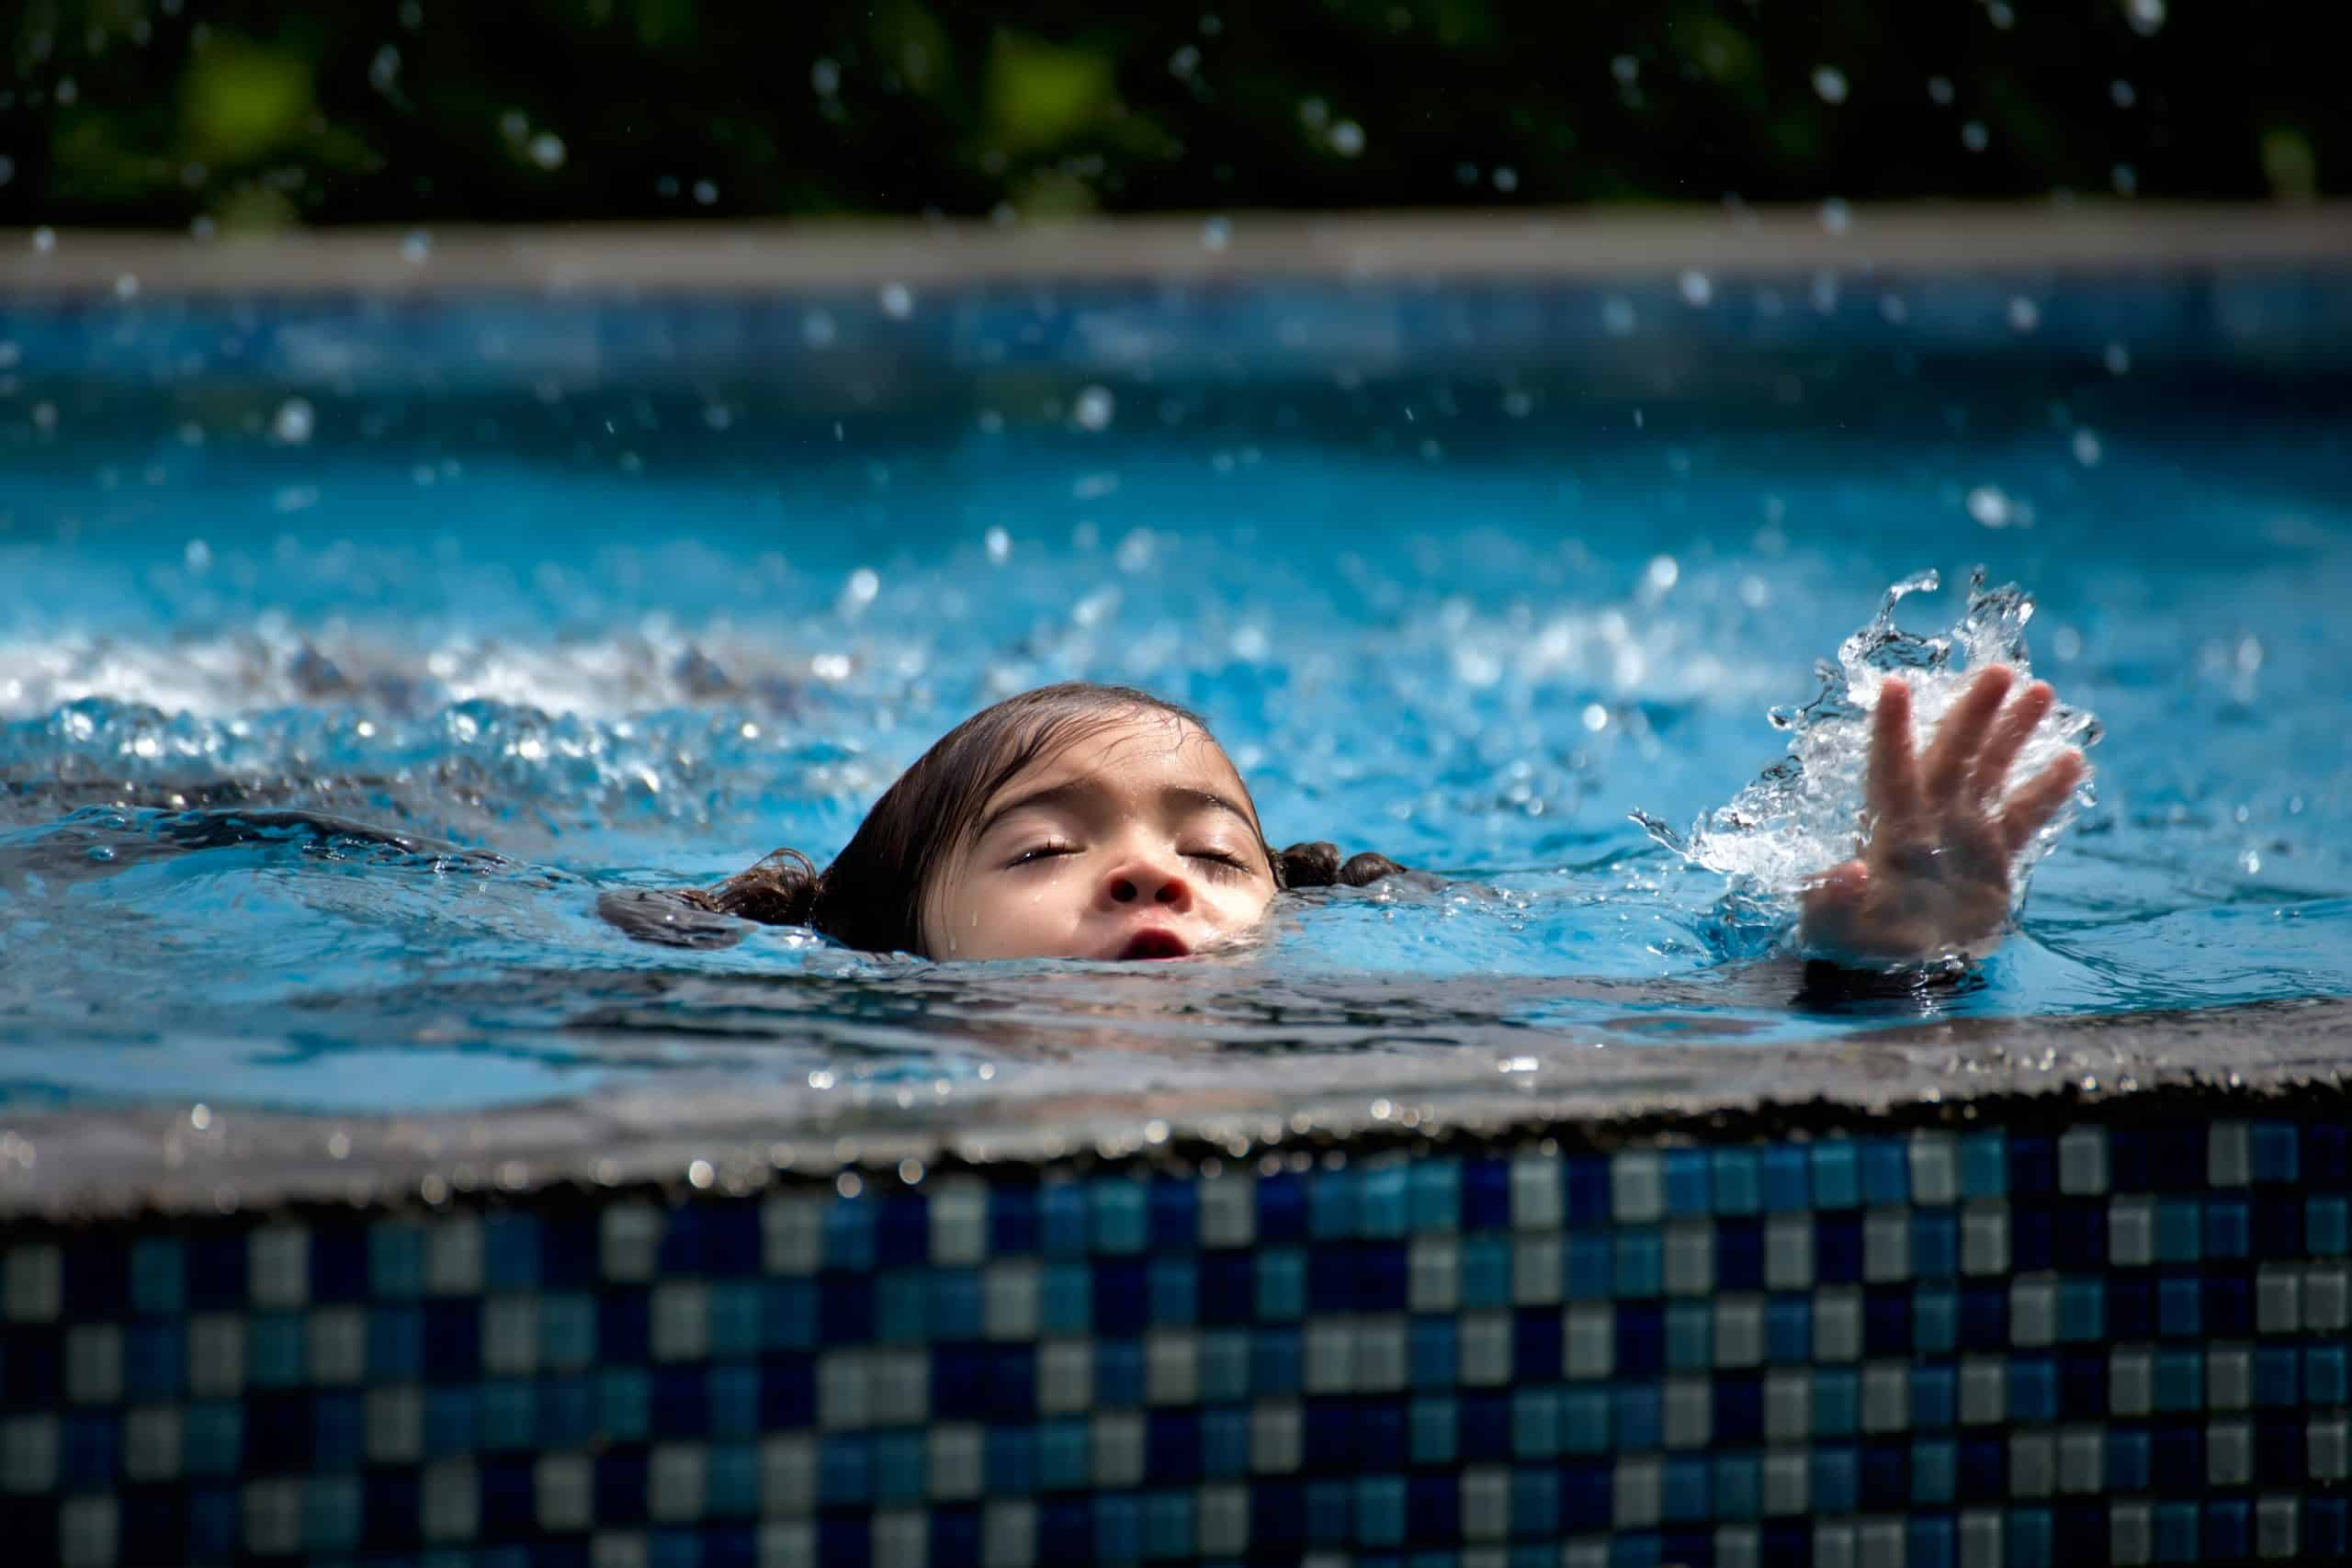 Child Drowning, Secondary Drowning & Dry Drowning: Signs to Look For & What to Do